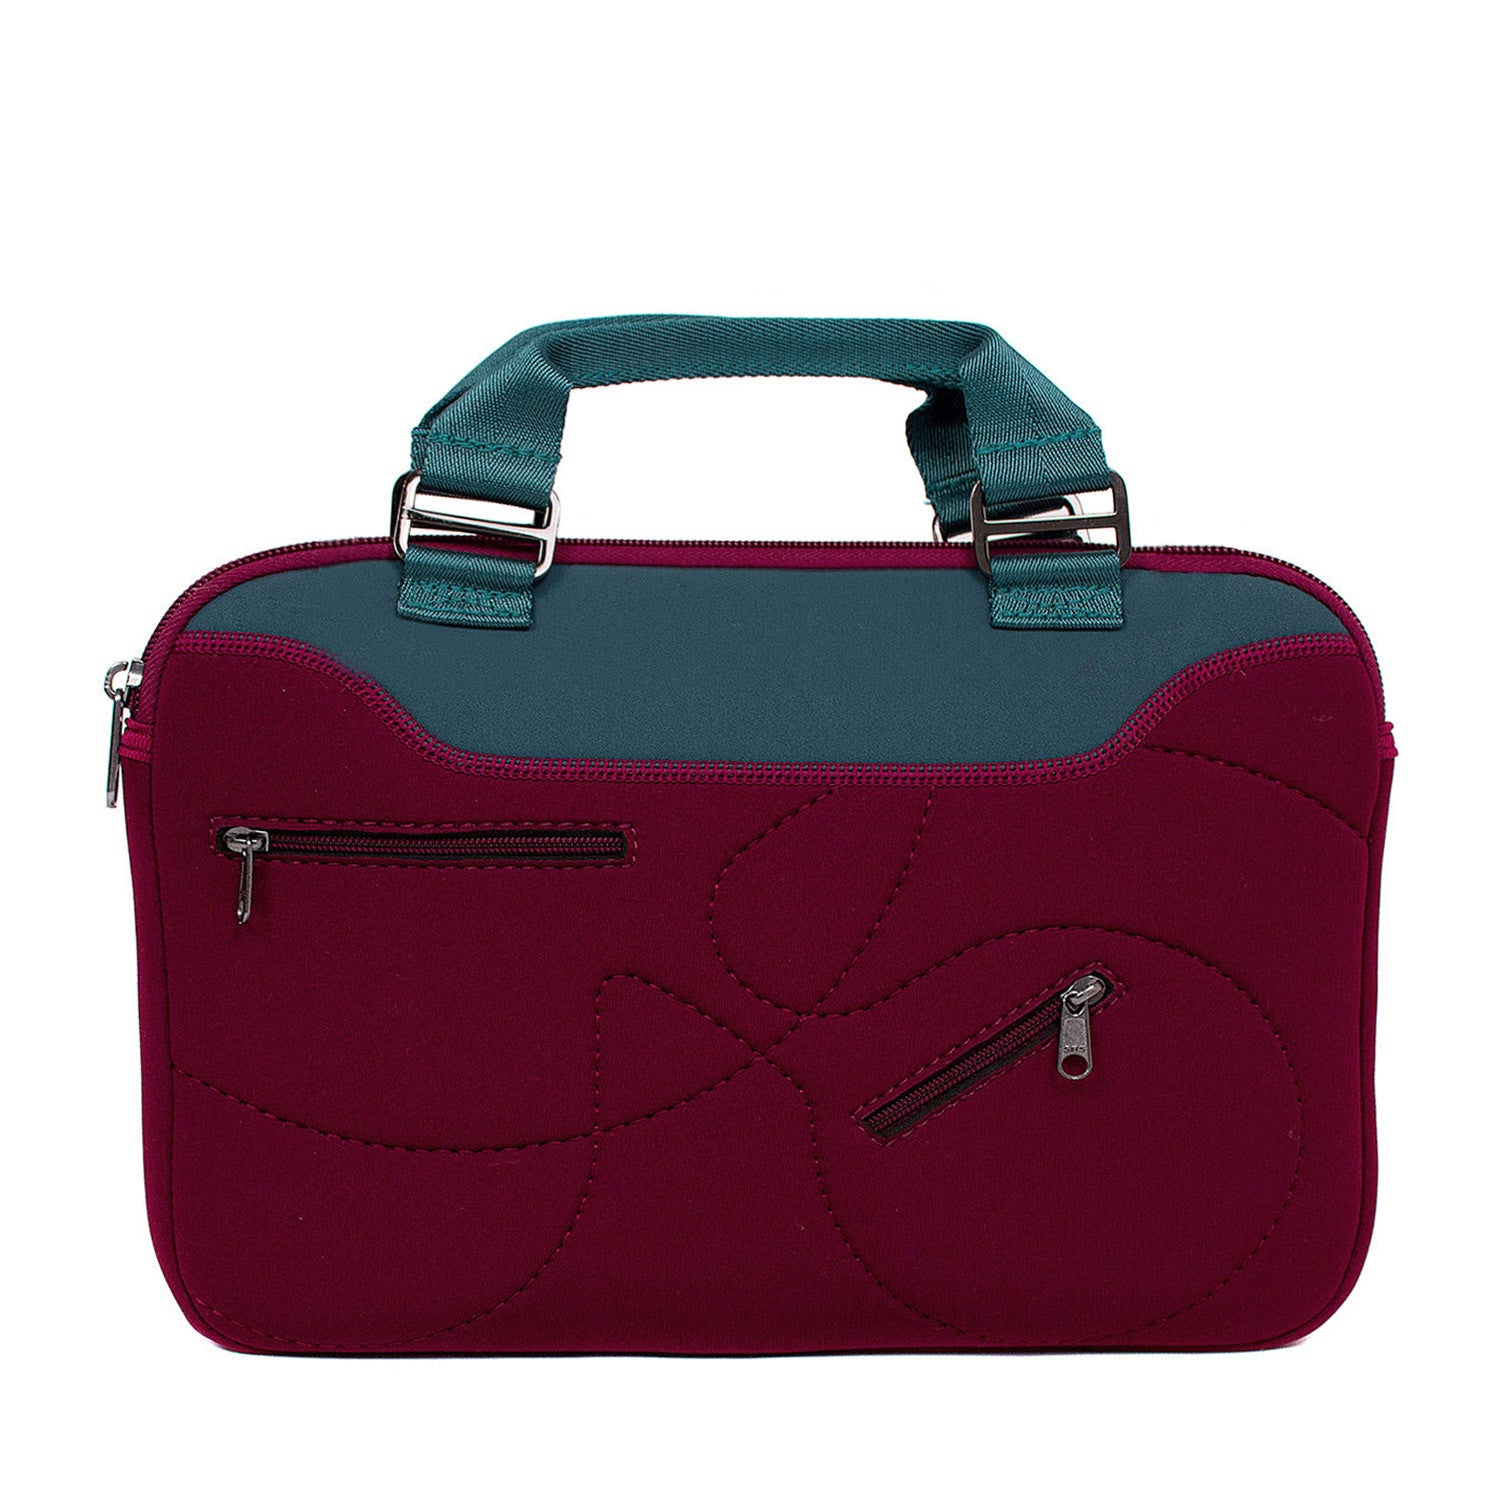 "Travel Hoptu 13"" Sleeve Laptop & Tablet Cases - Looptworks"